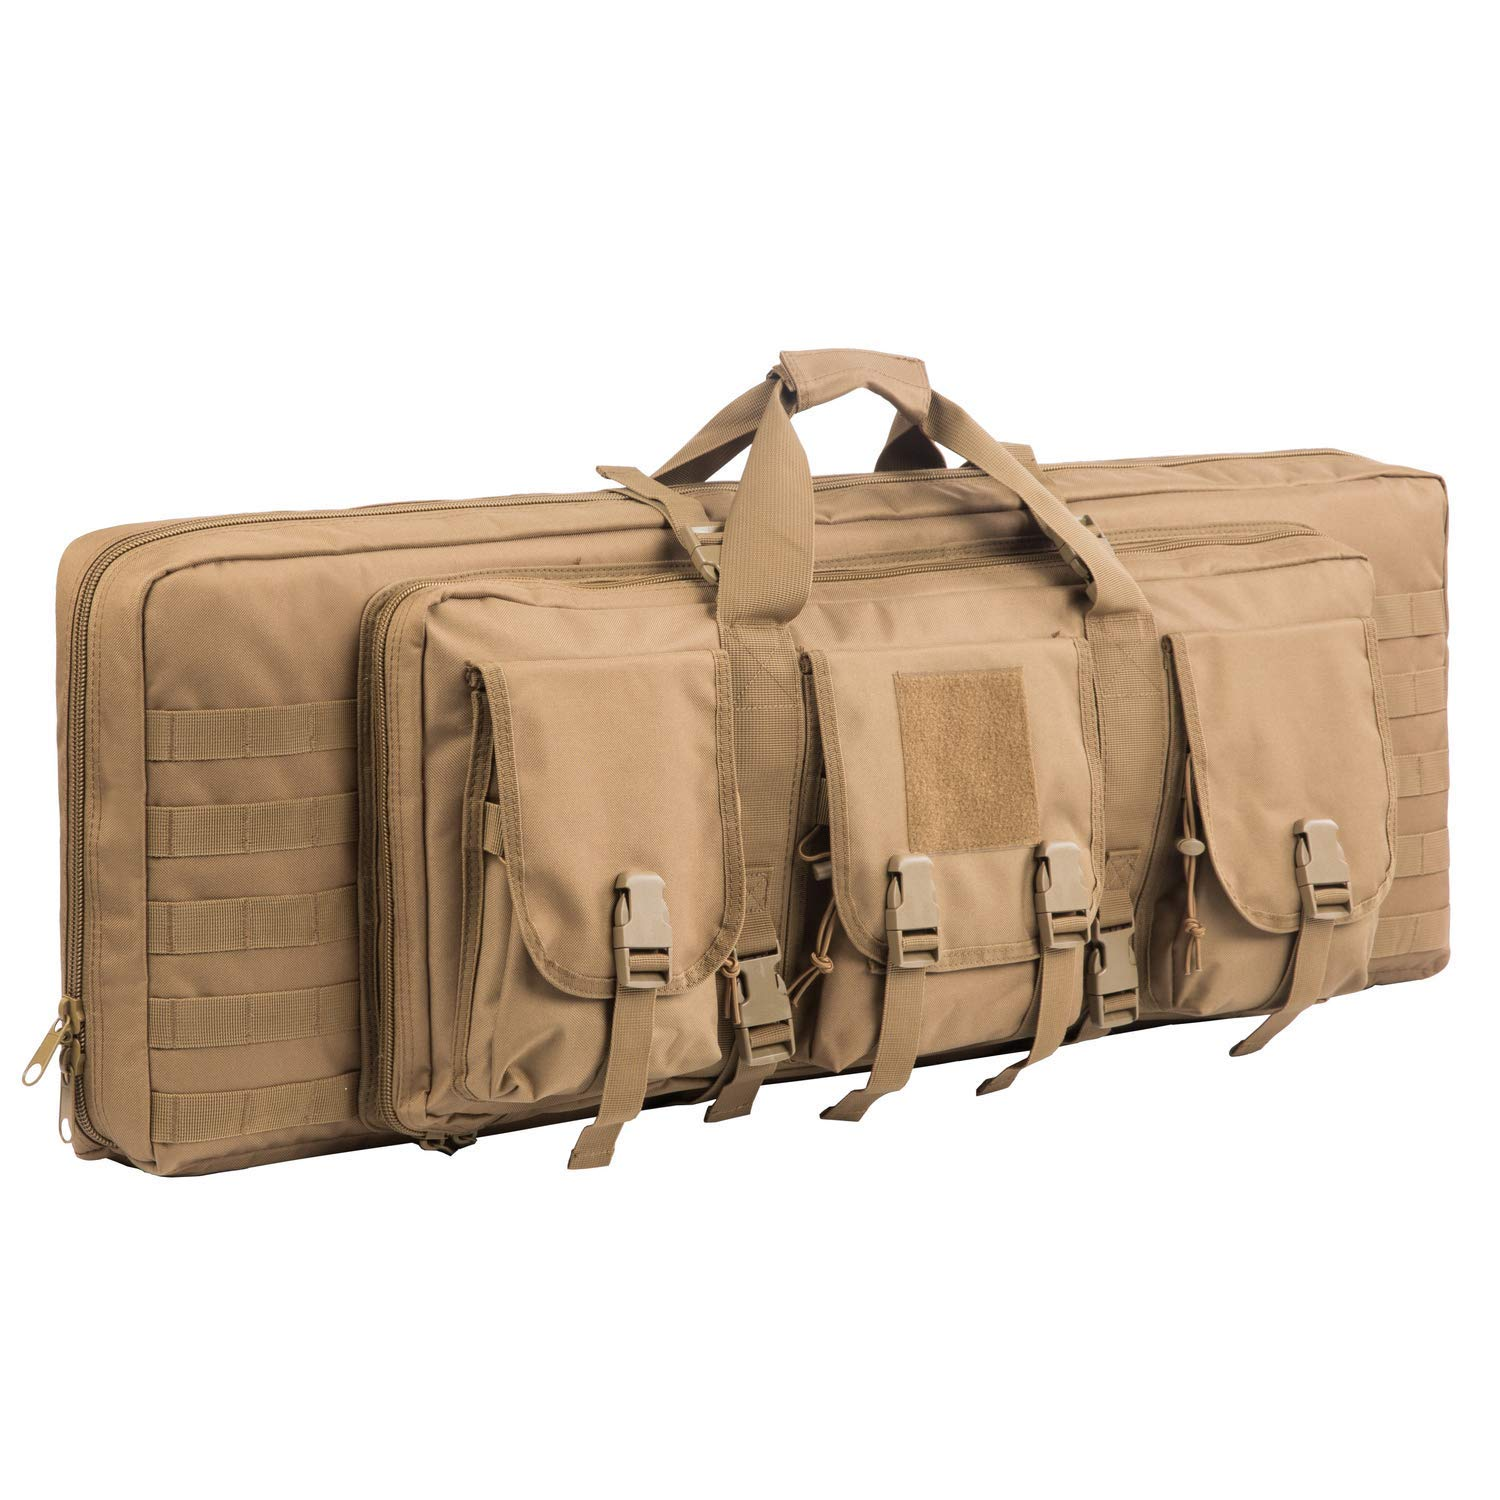 XWLSPORT AK47/AR16 Tactical Rifle Case Double Carbine Bag Outdoor Molle Deluxe Double Rifle Gun Bag Padded Long Gun Case & Rifle Storage Backpack(2 Sizes and 6 Colors to chooese from) (TAN, 42inch) [並行輸入品] B07R4TMKDM